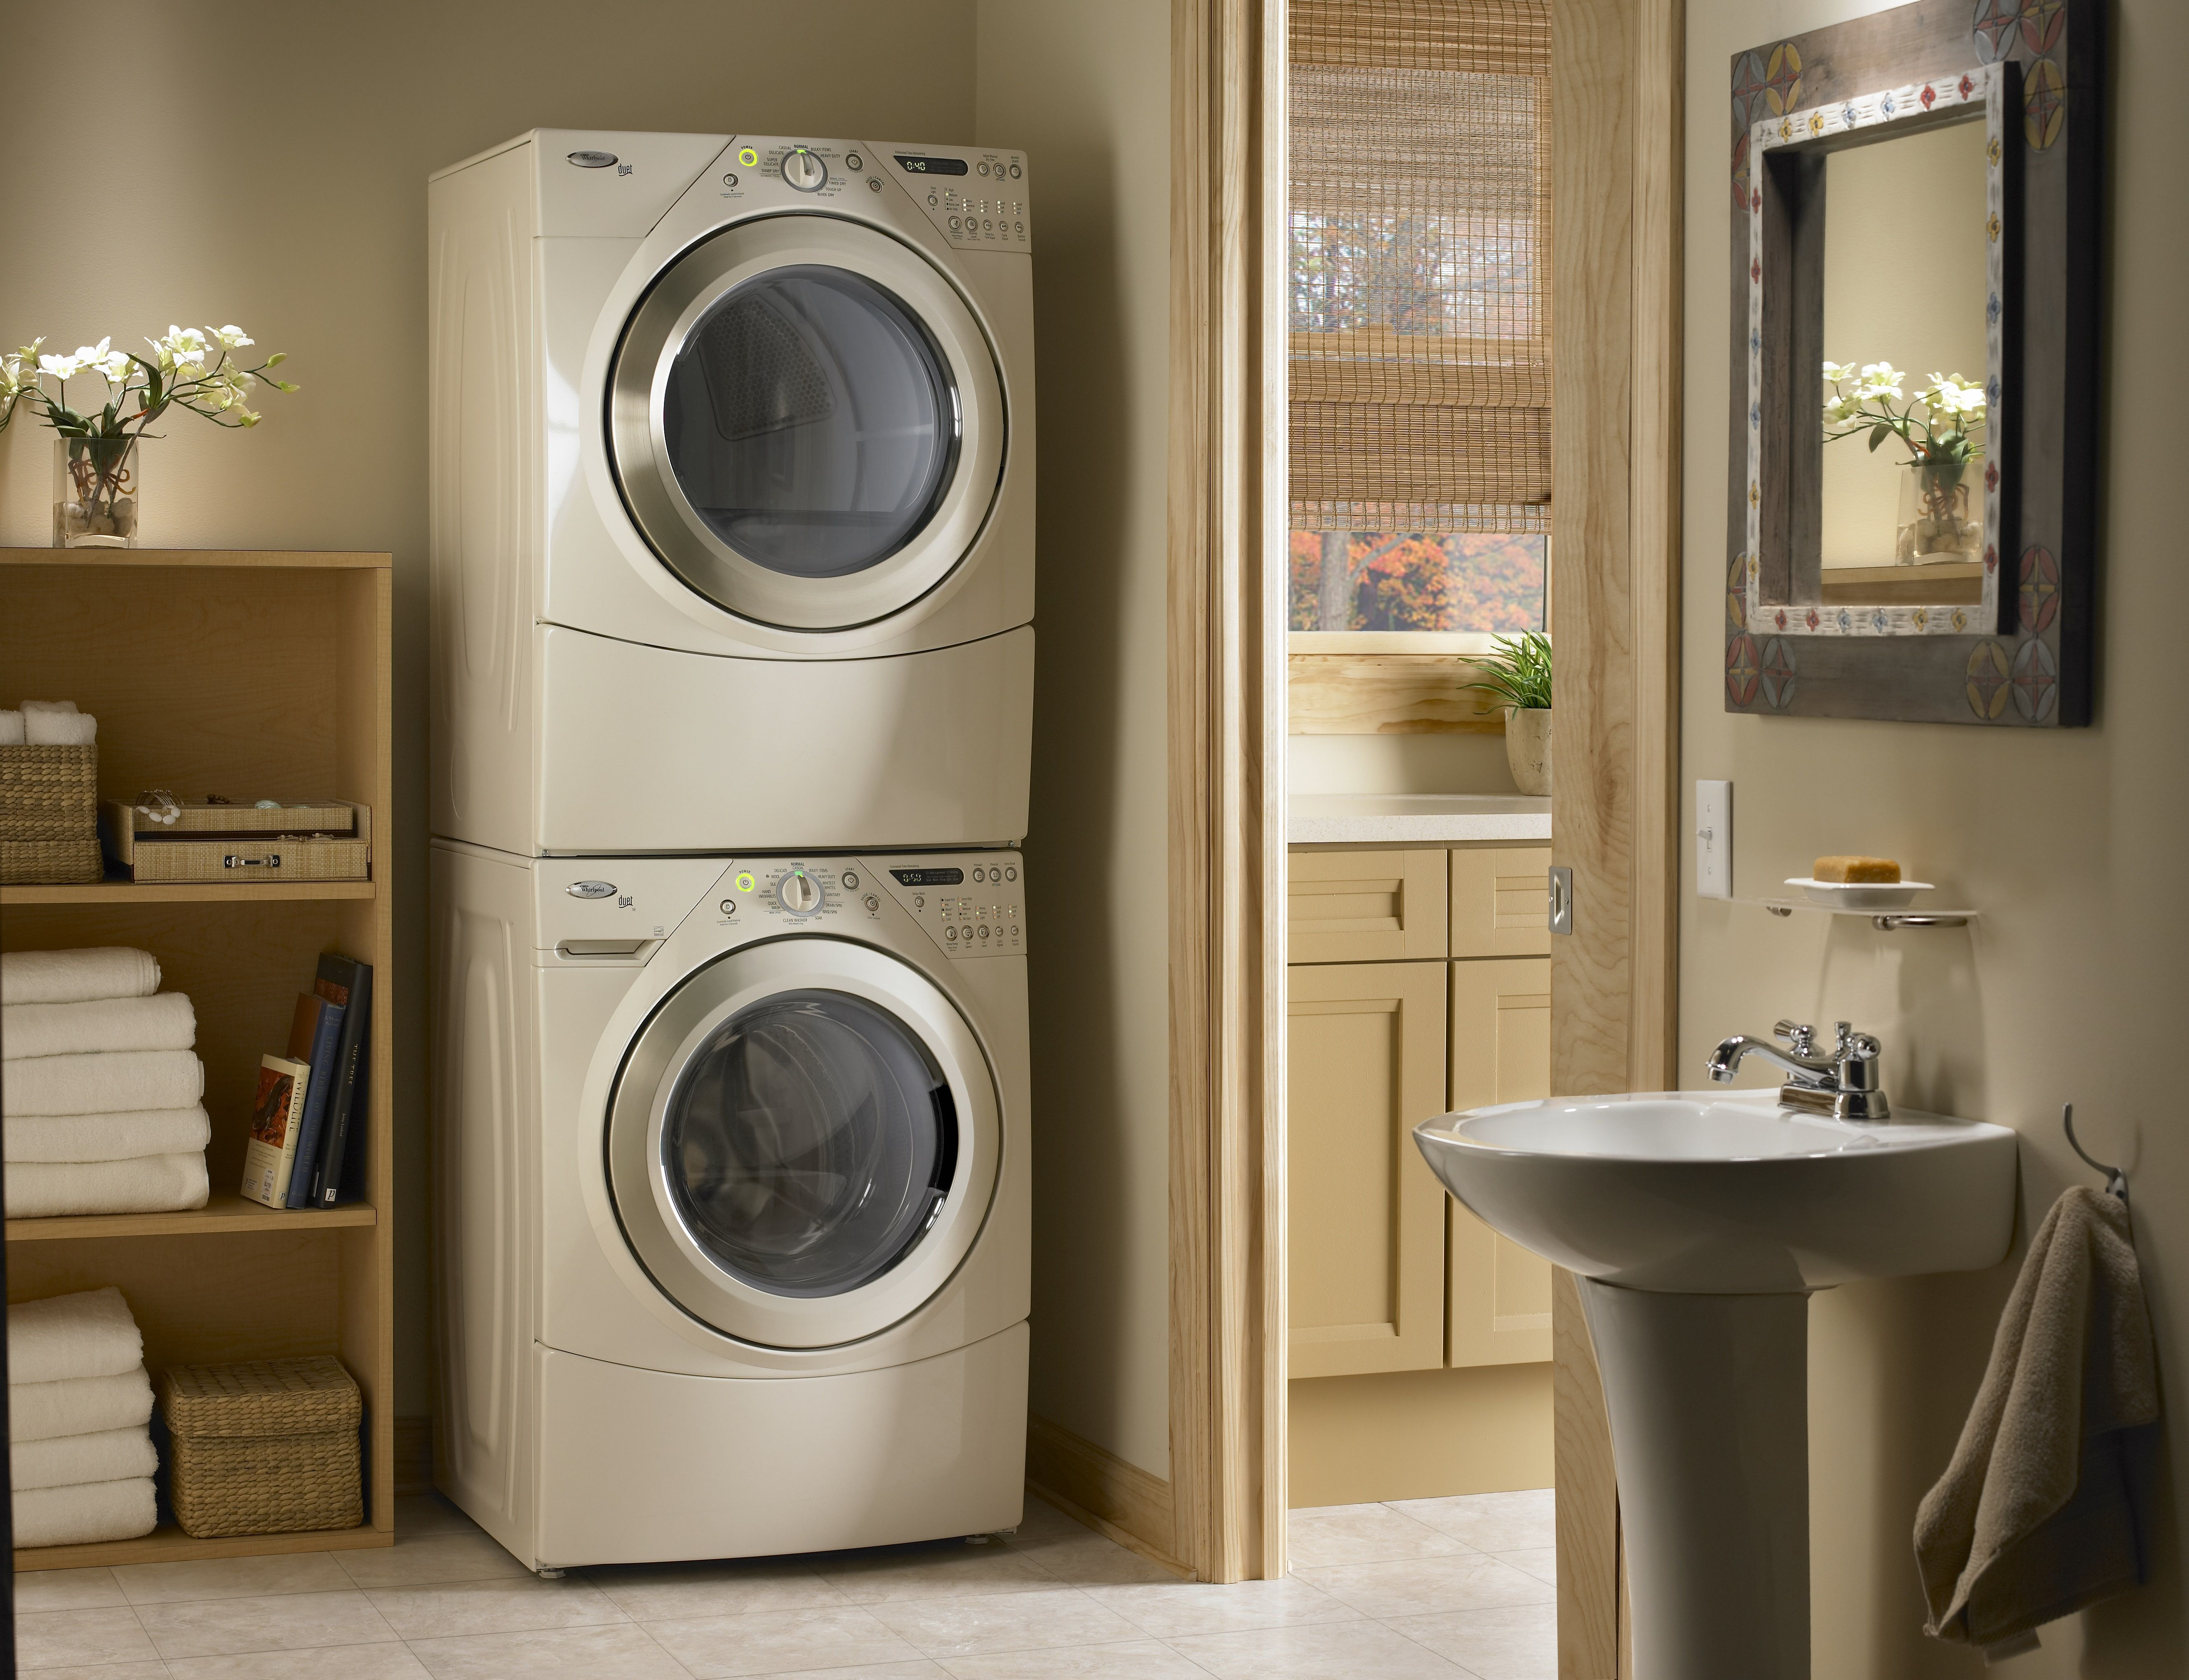 Dryer buying guide   Dryer, Washer and Laundry rooms